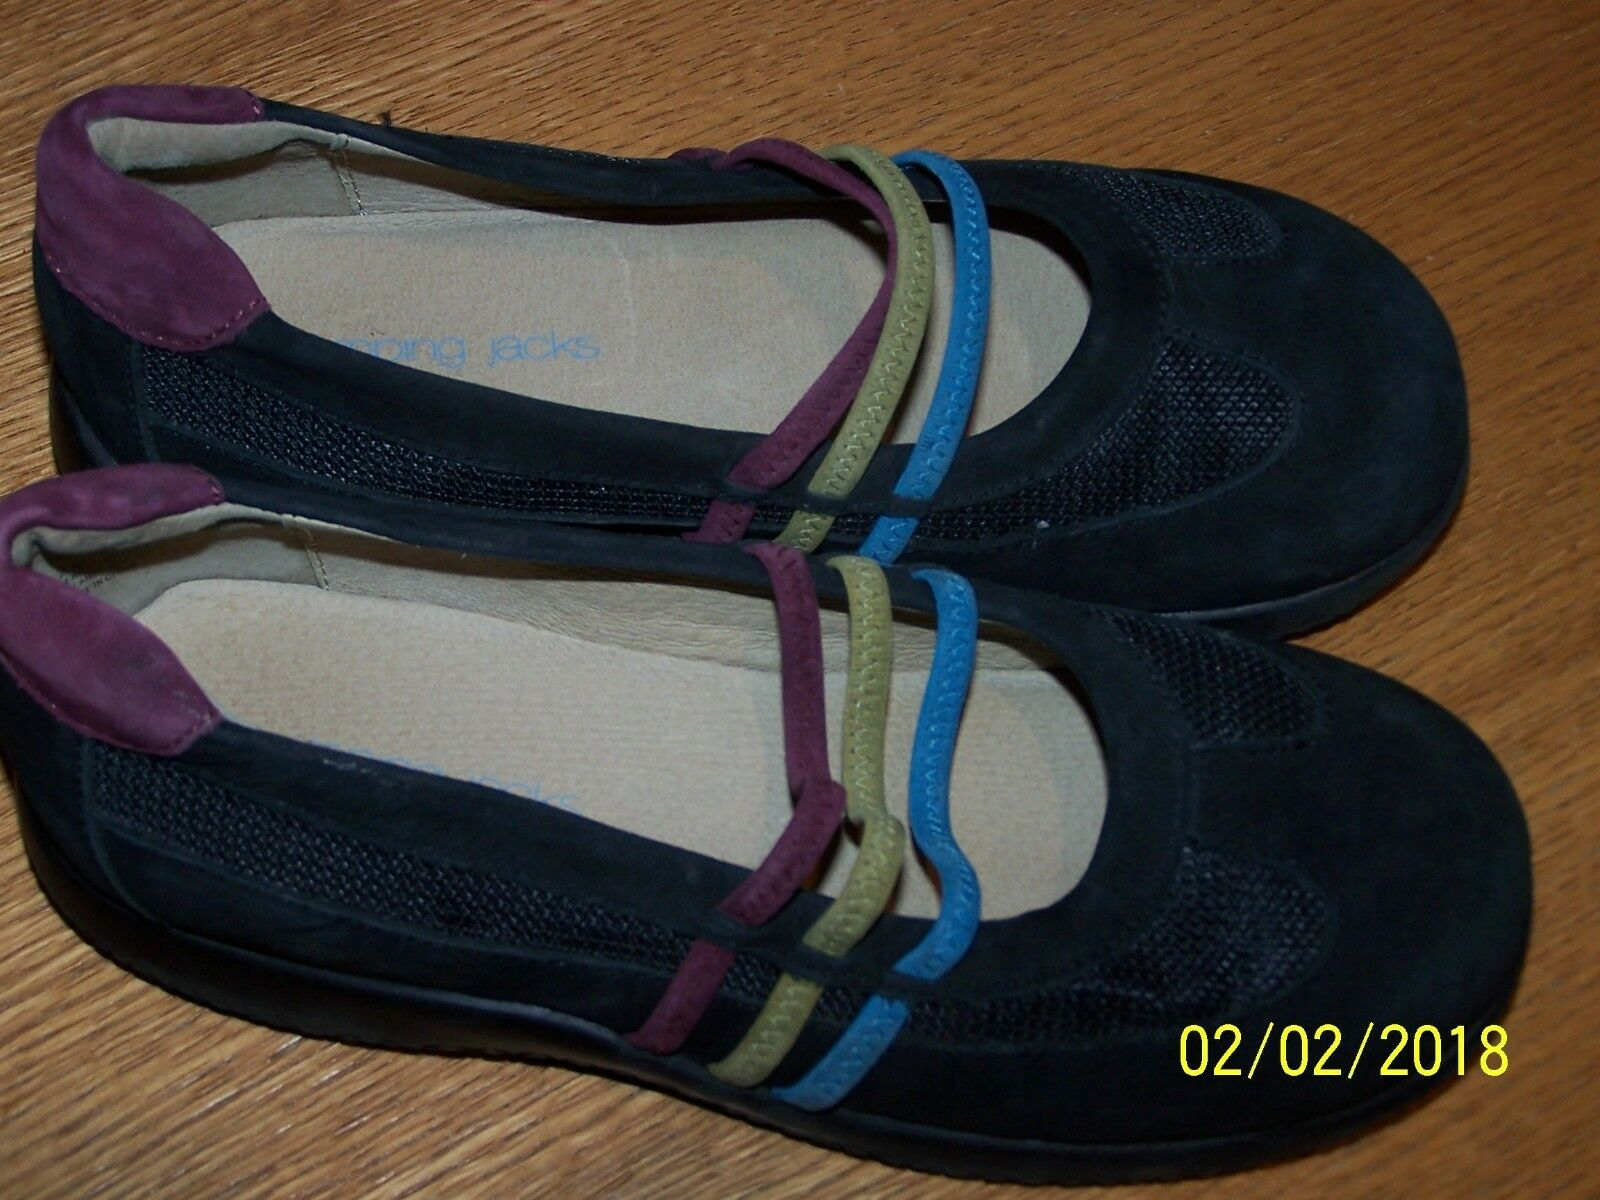 JUMPING JACKS MARY YOUTH BLACK SUEDE LEATHER MARY JACKS JANES MULTI-COLORED STRAPS SZ 2M d3e718